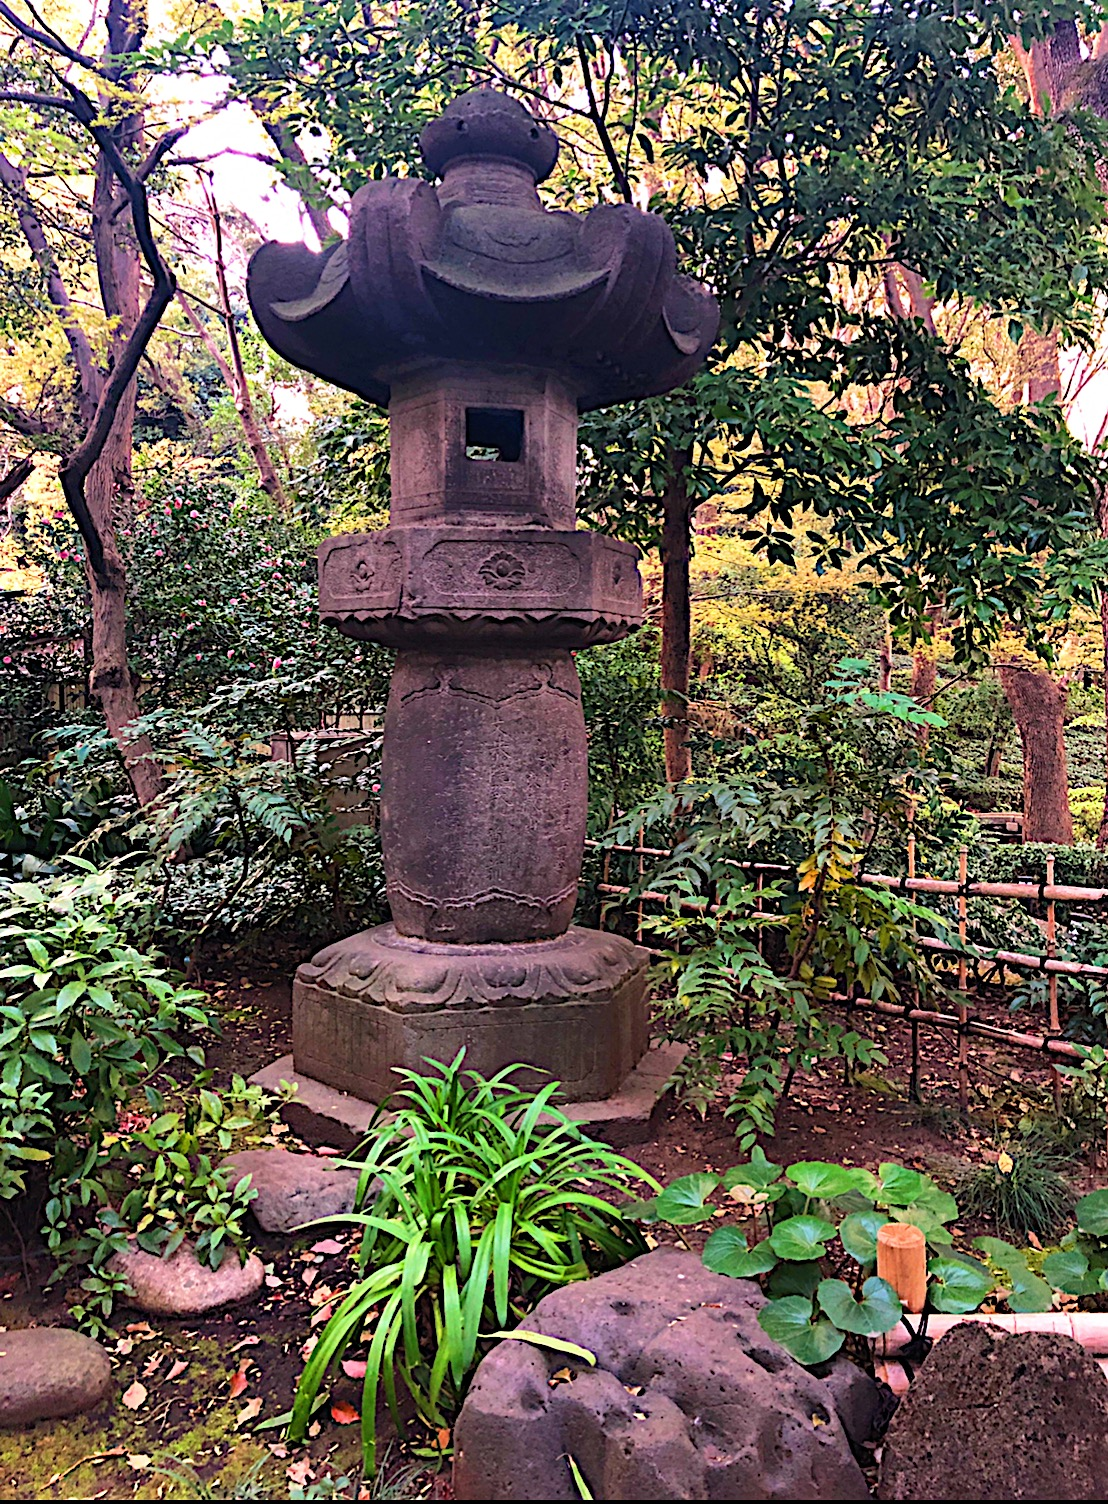 Antique Stone Lantern in the Japanese Garden at the Hotel New Otani in Tokyo